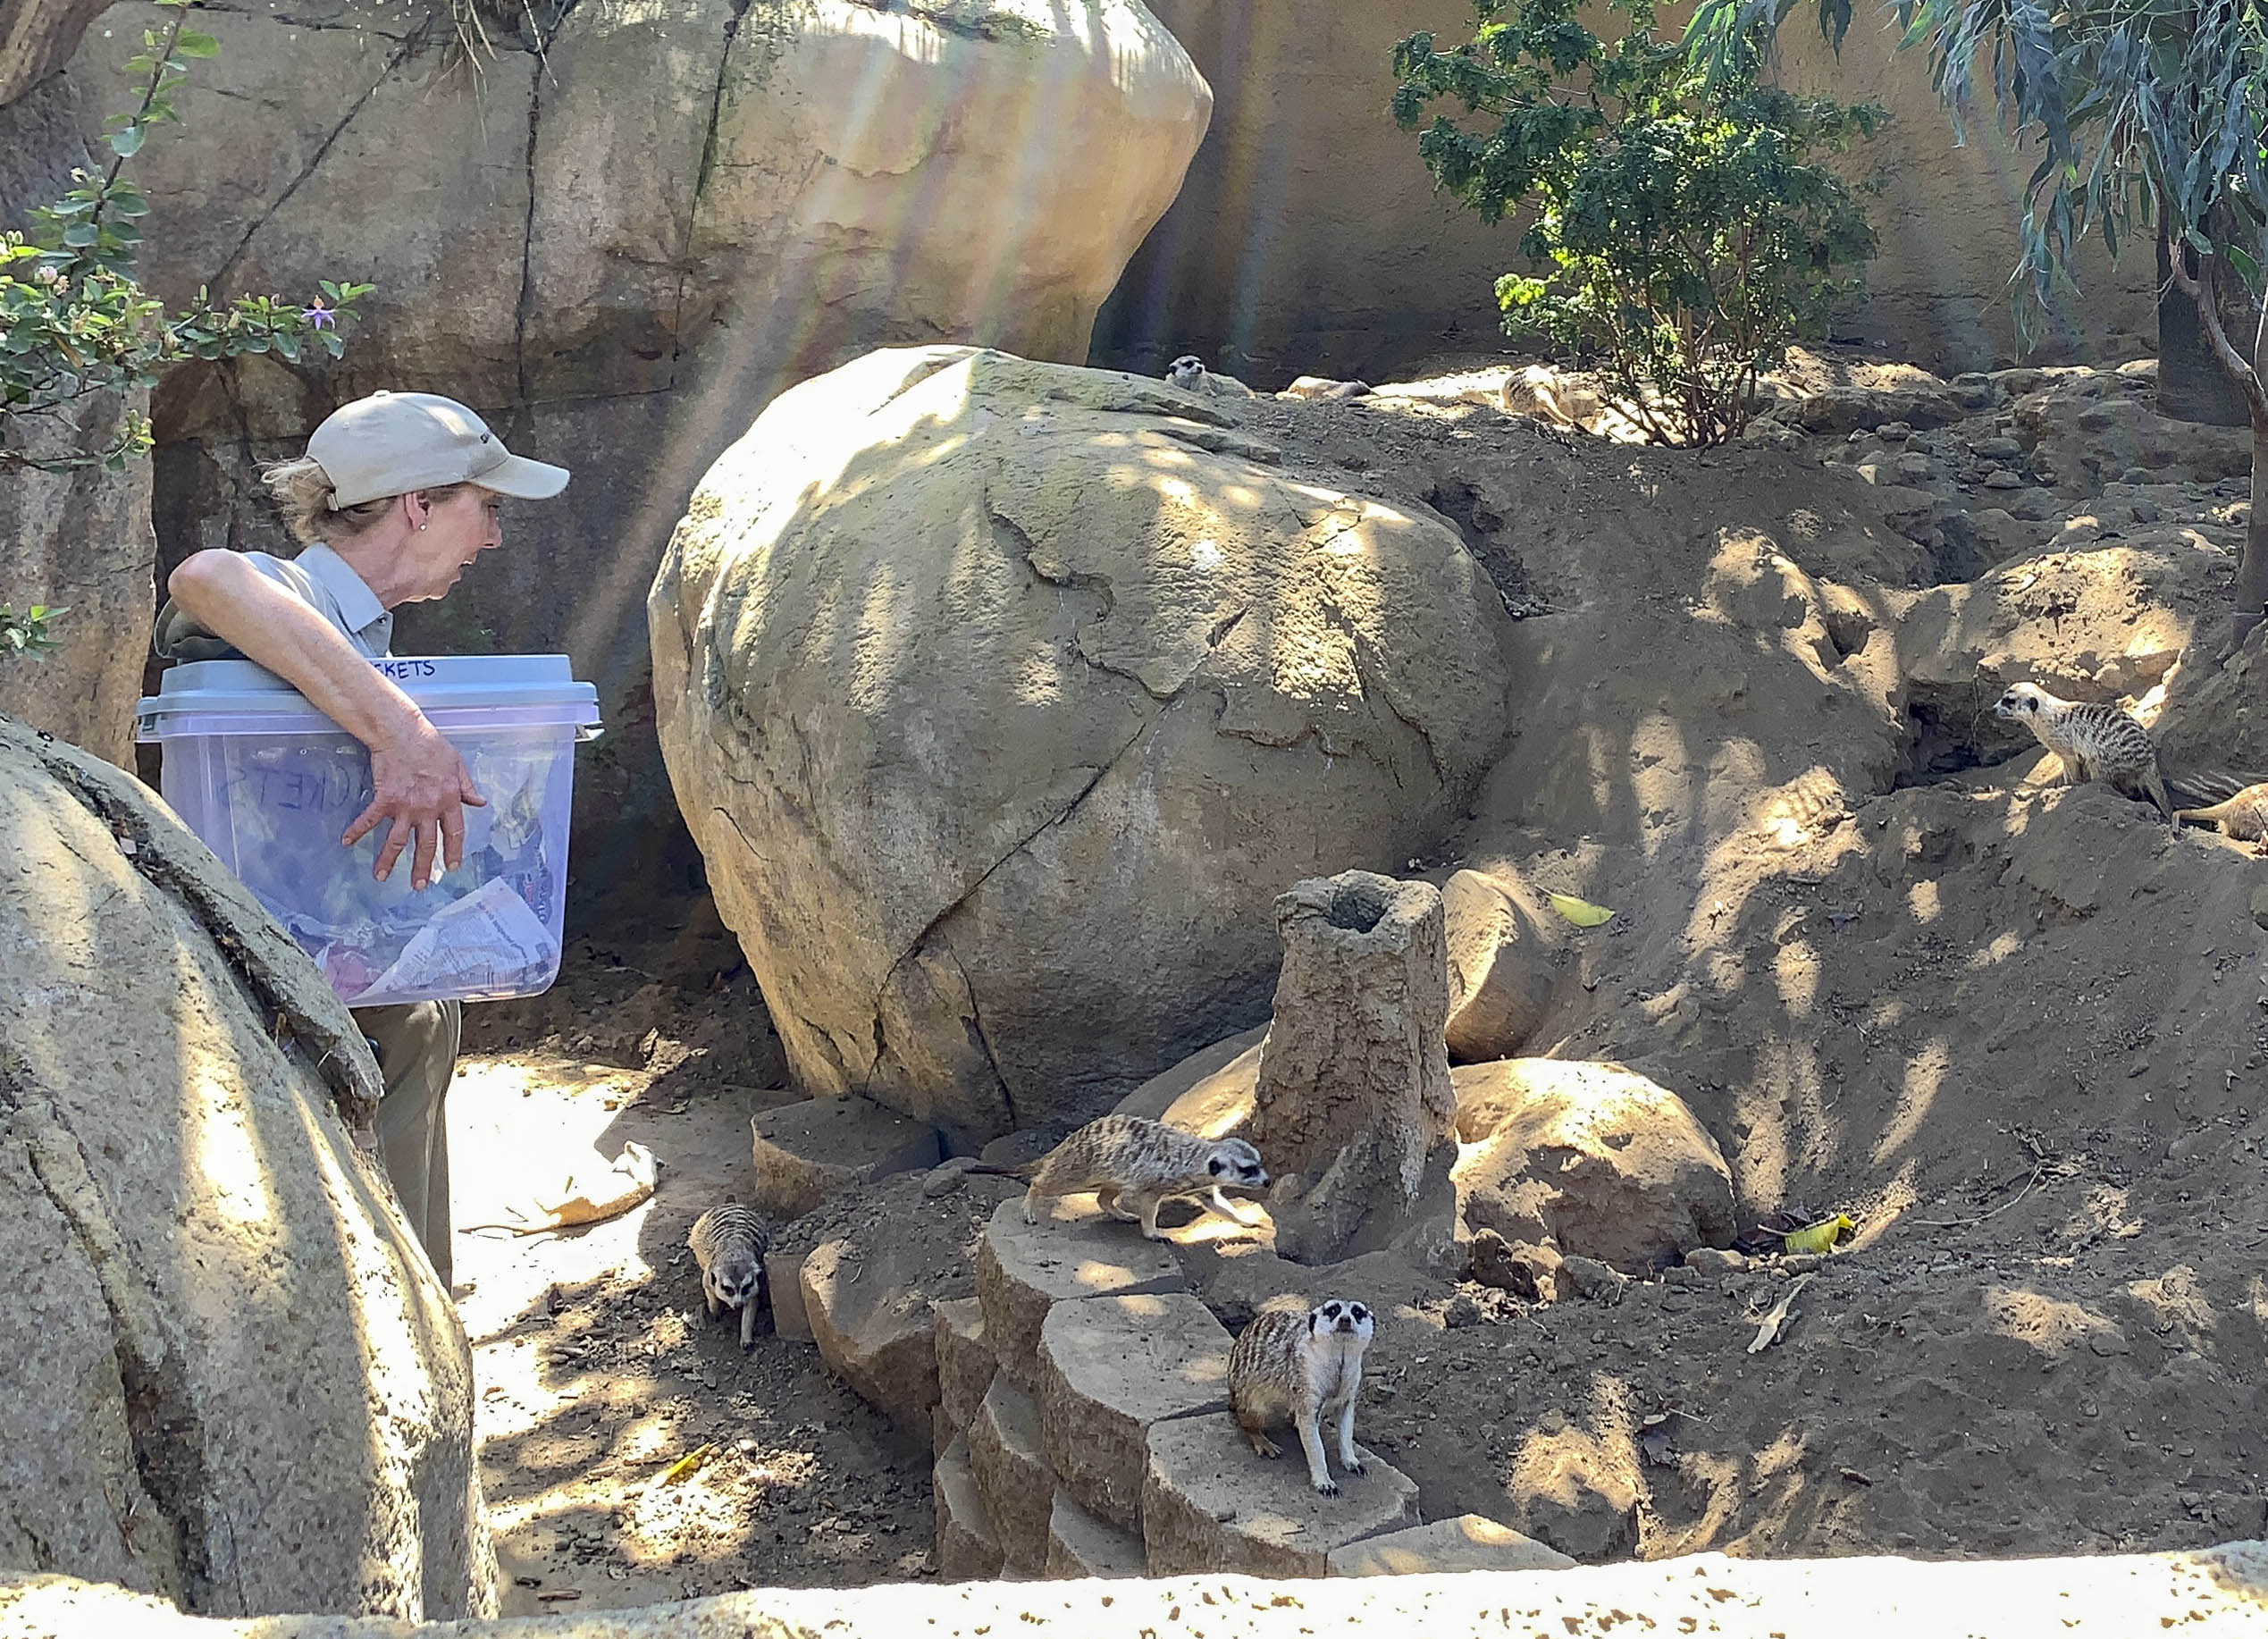 A keeper tells guests about meerkats during a daily Keeper Talk.